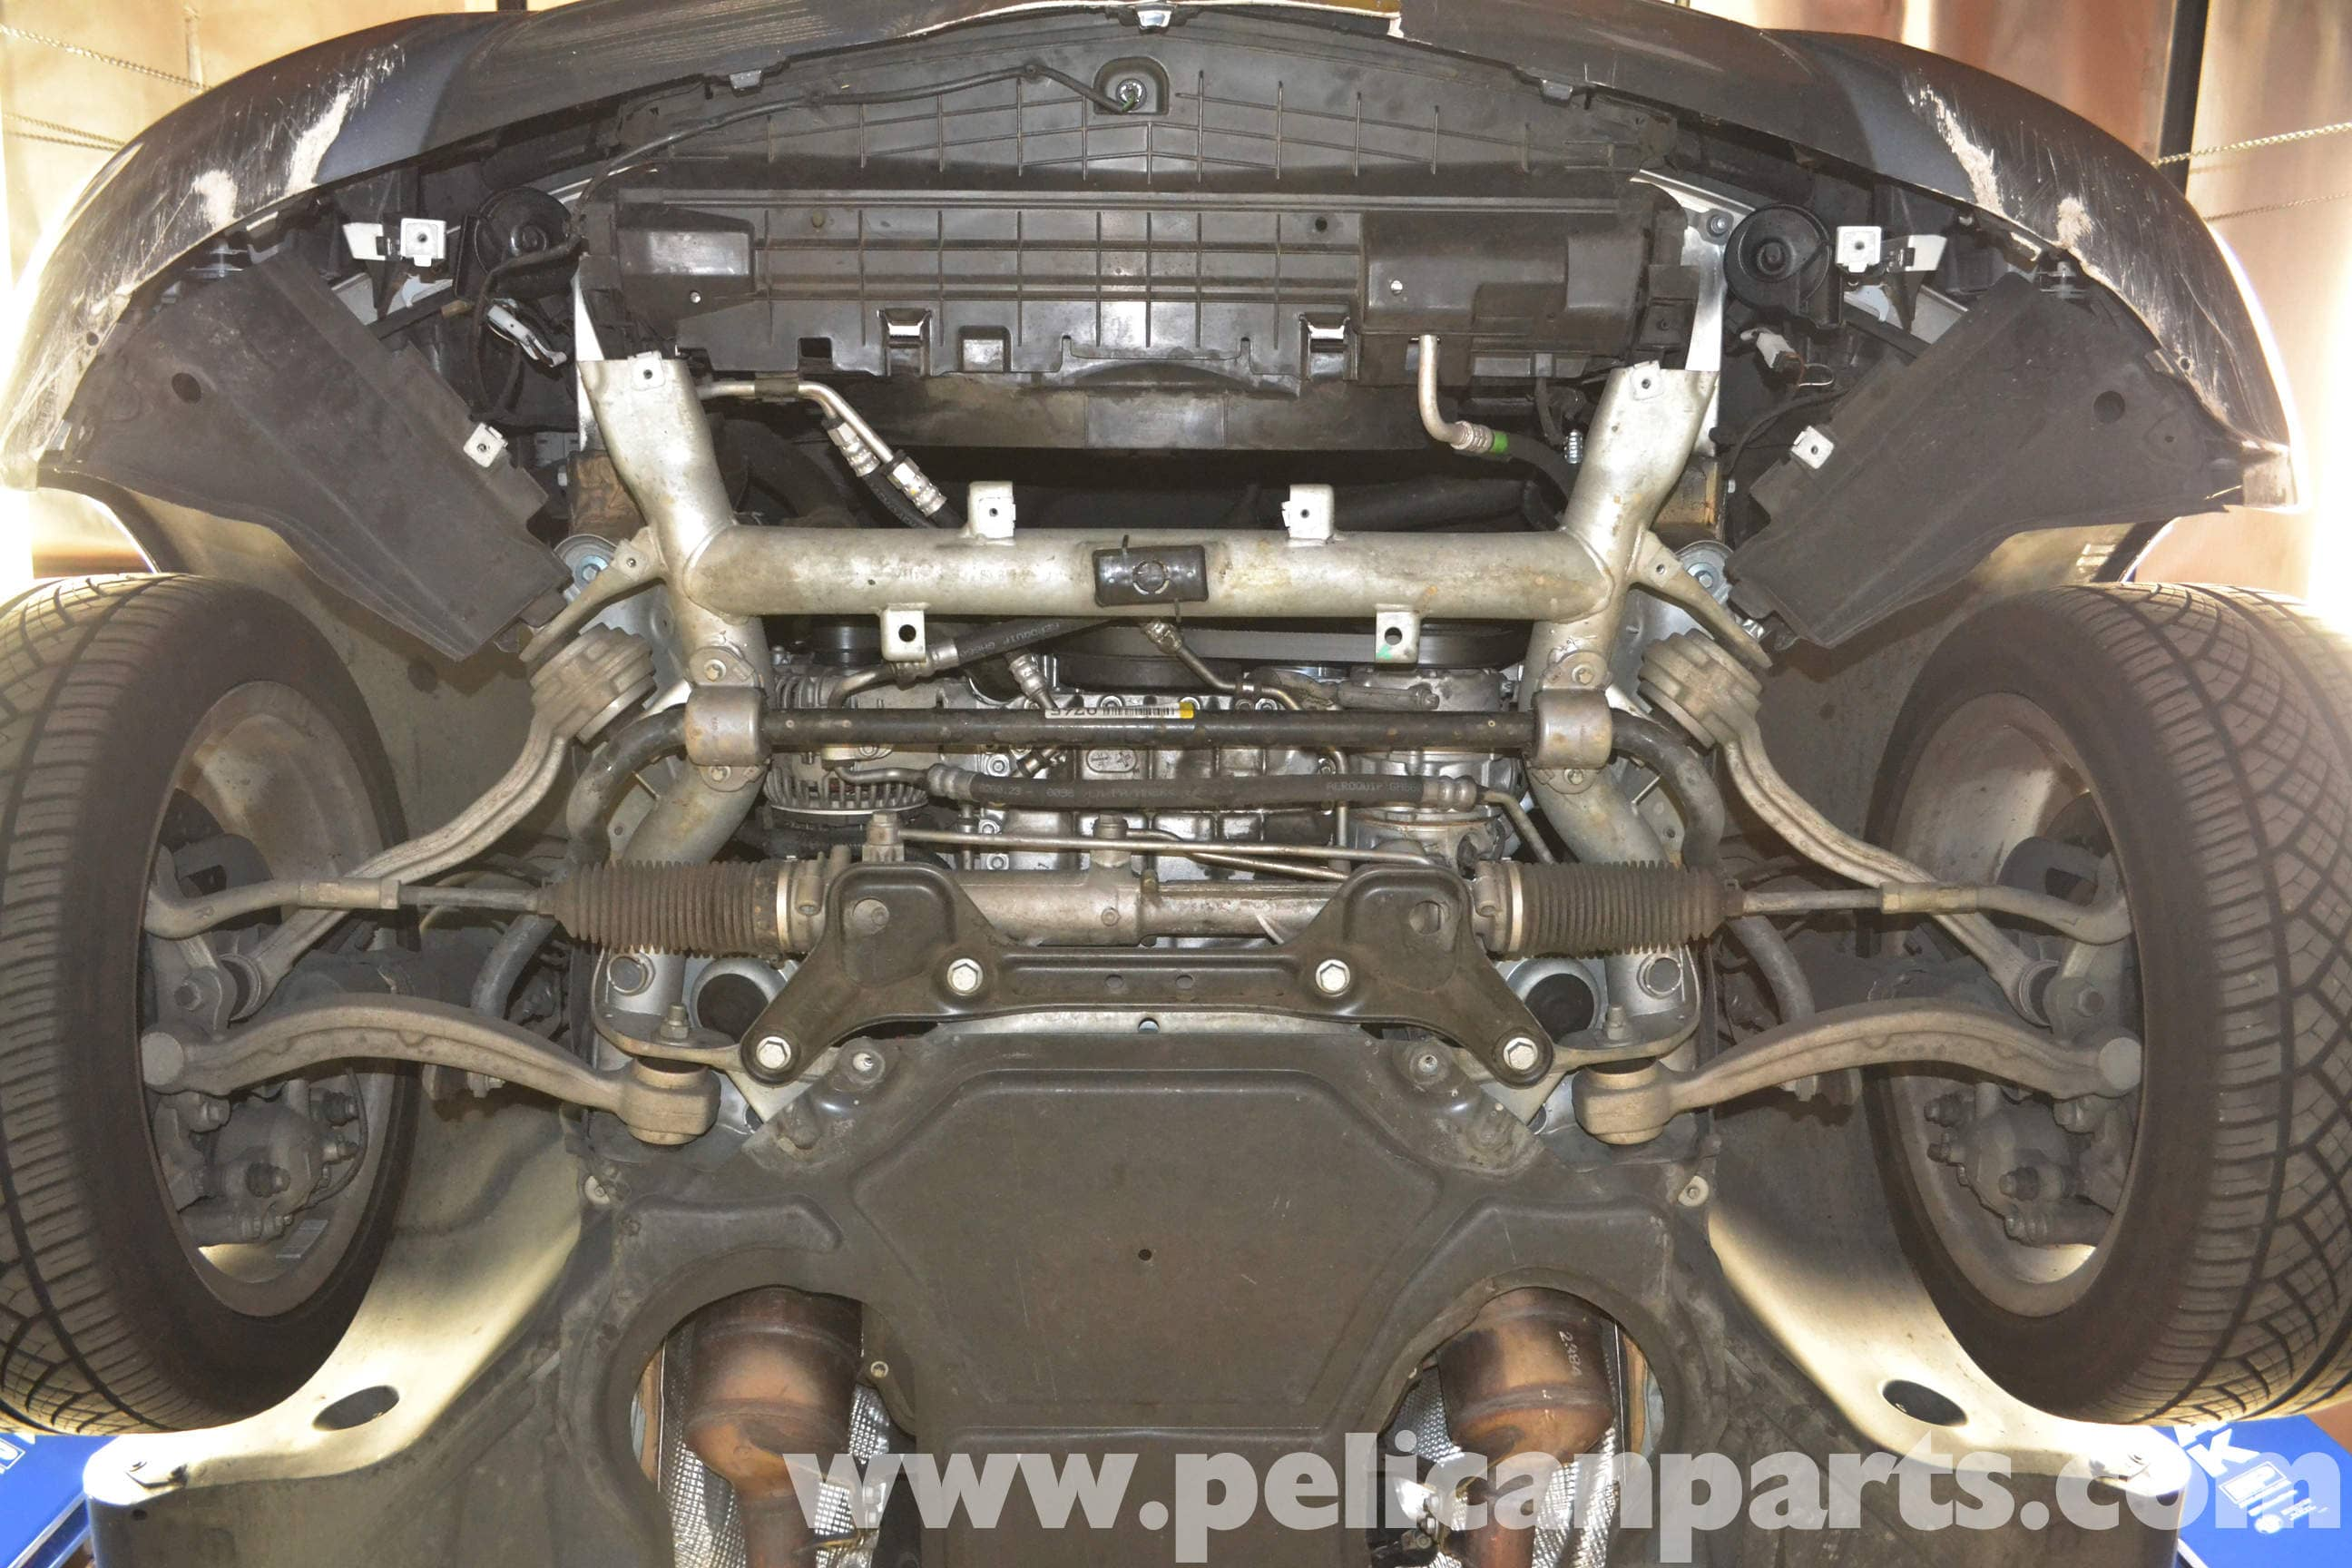 Mercedes Benz W204 Underbody Tray Removal 2008 2014 C250 C300 Engine Exhaust Large Image Extra